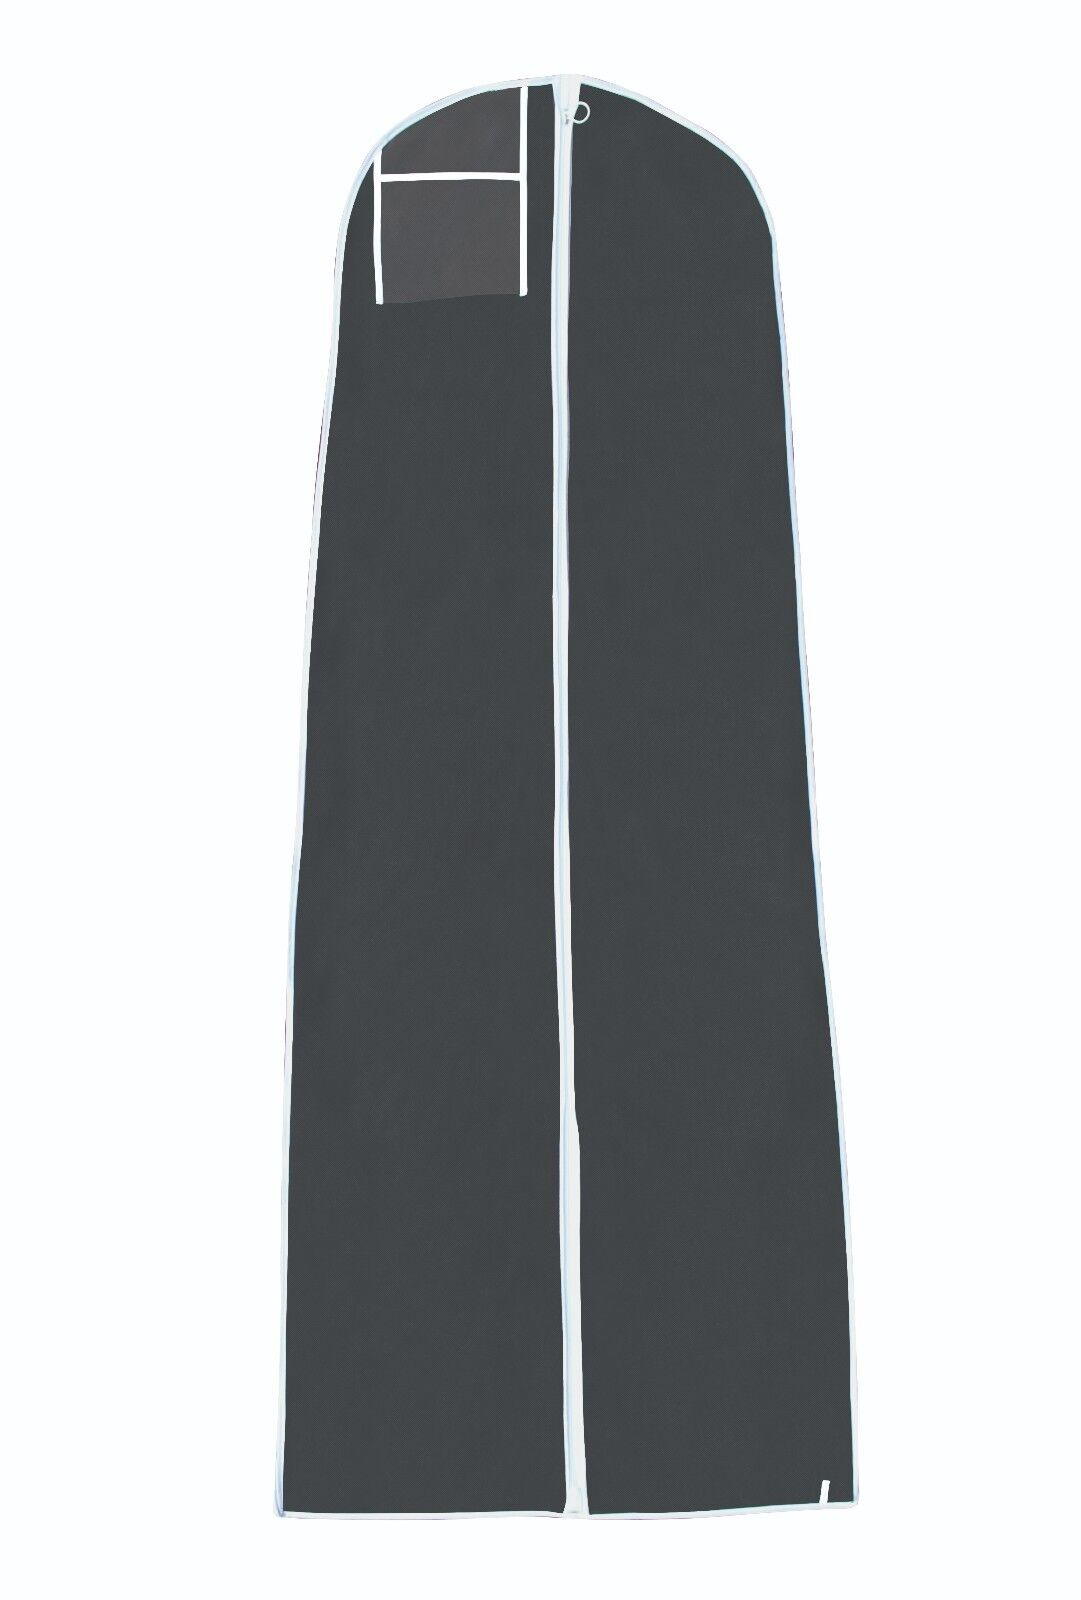 20x Hoesh Breathable Long Dress Zip Cover Bag For Bridal Wedding Gown Prom Dress